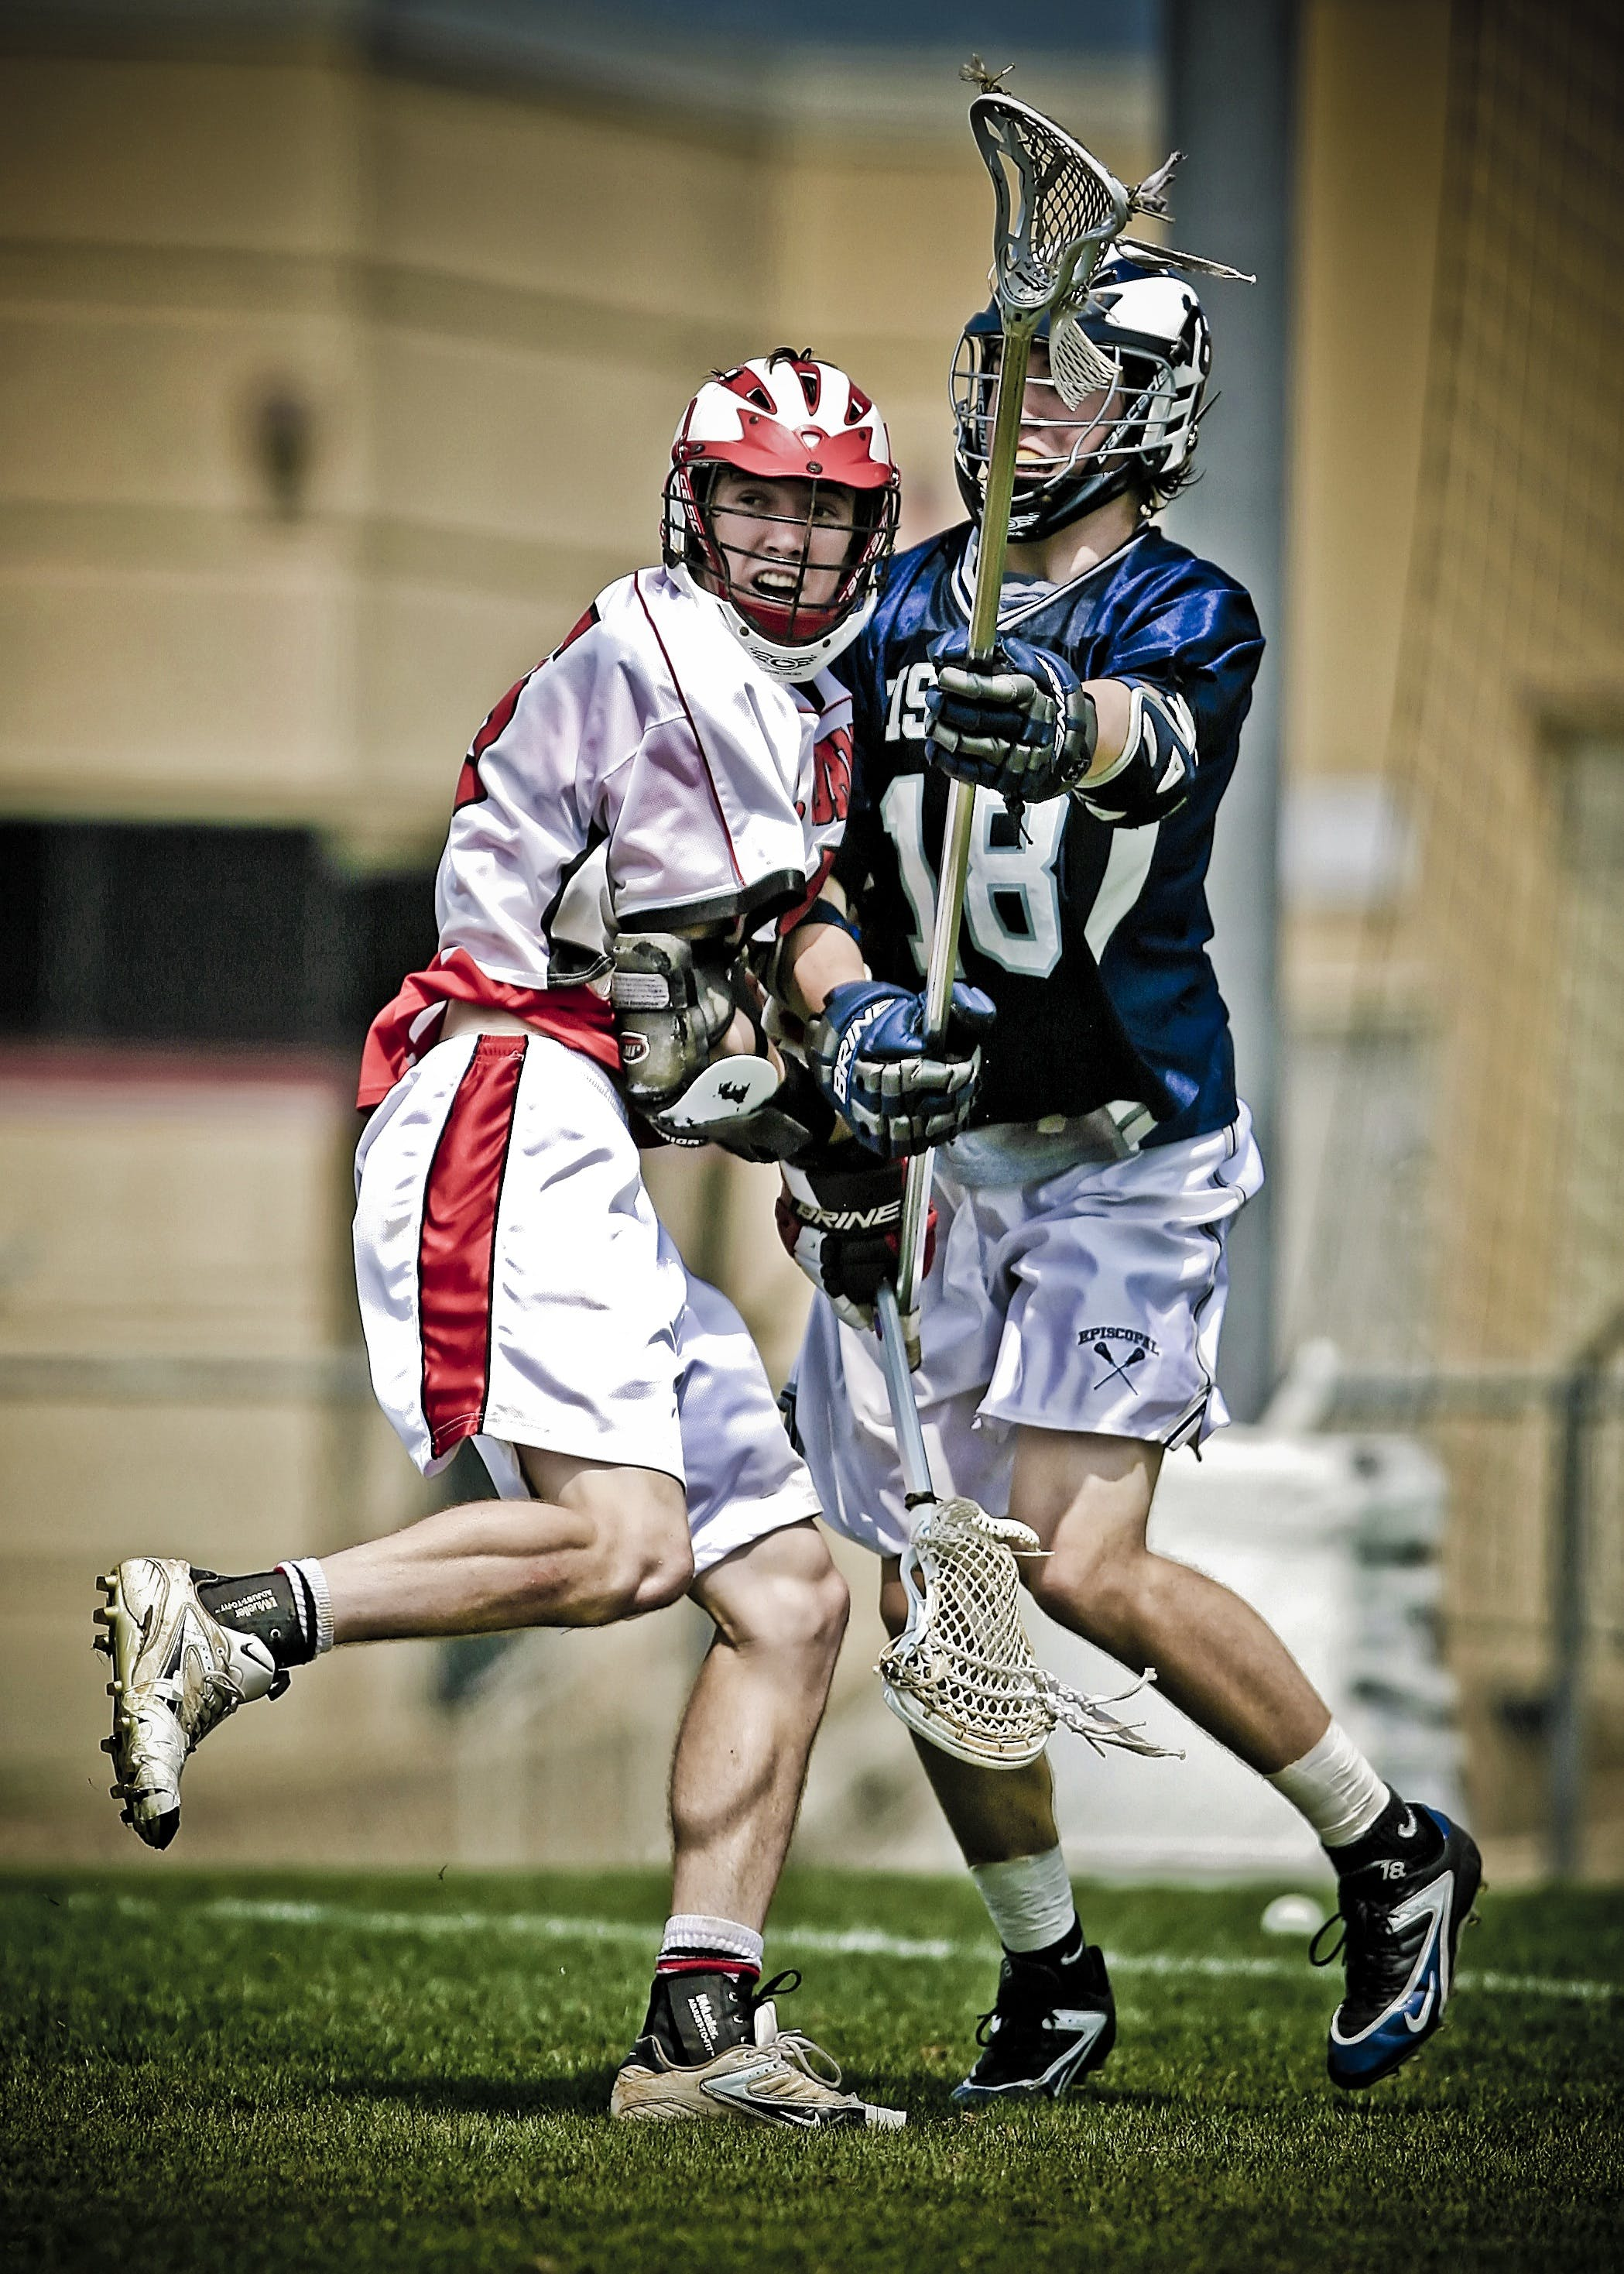 Two Men Playing Lacrosse